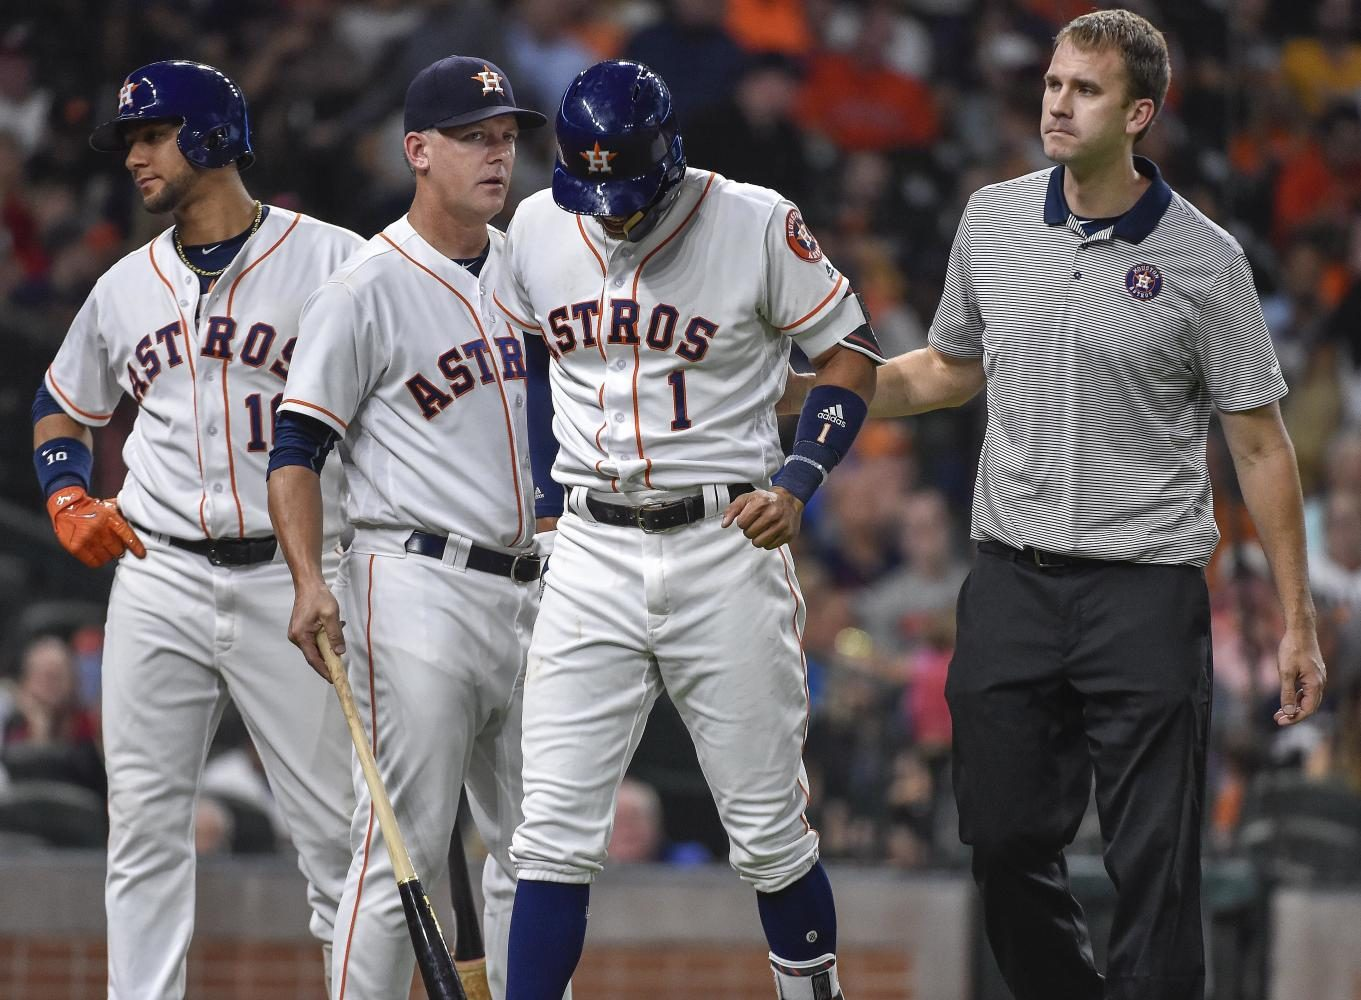 Correa+walks+off+of+field+after+re-injuring+left+thumb+in+Monday%27s+game.%28AP+Photo%2FEric+Christian+Smith%29